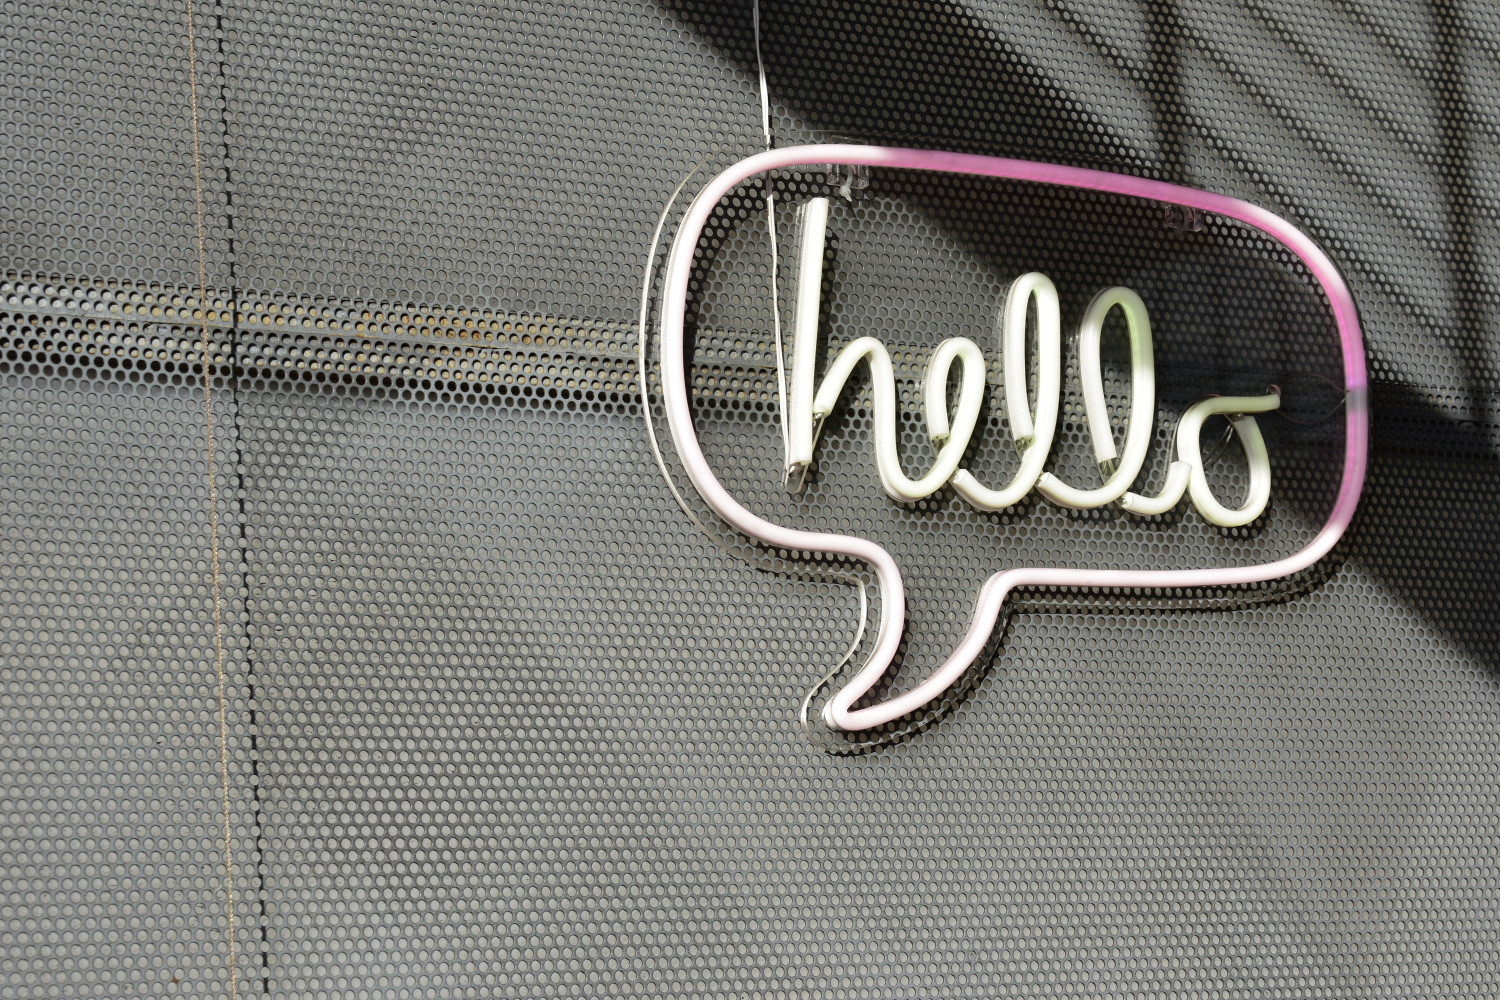 Neon sign with a speech bubble reading 'Hello'